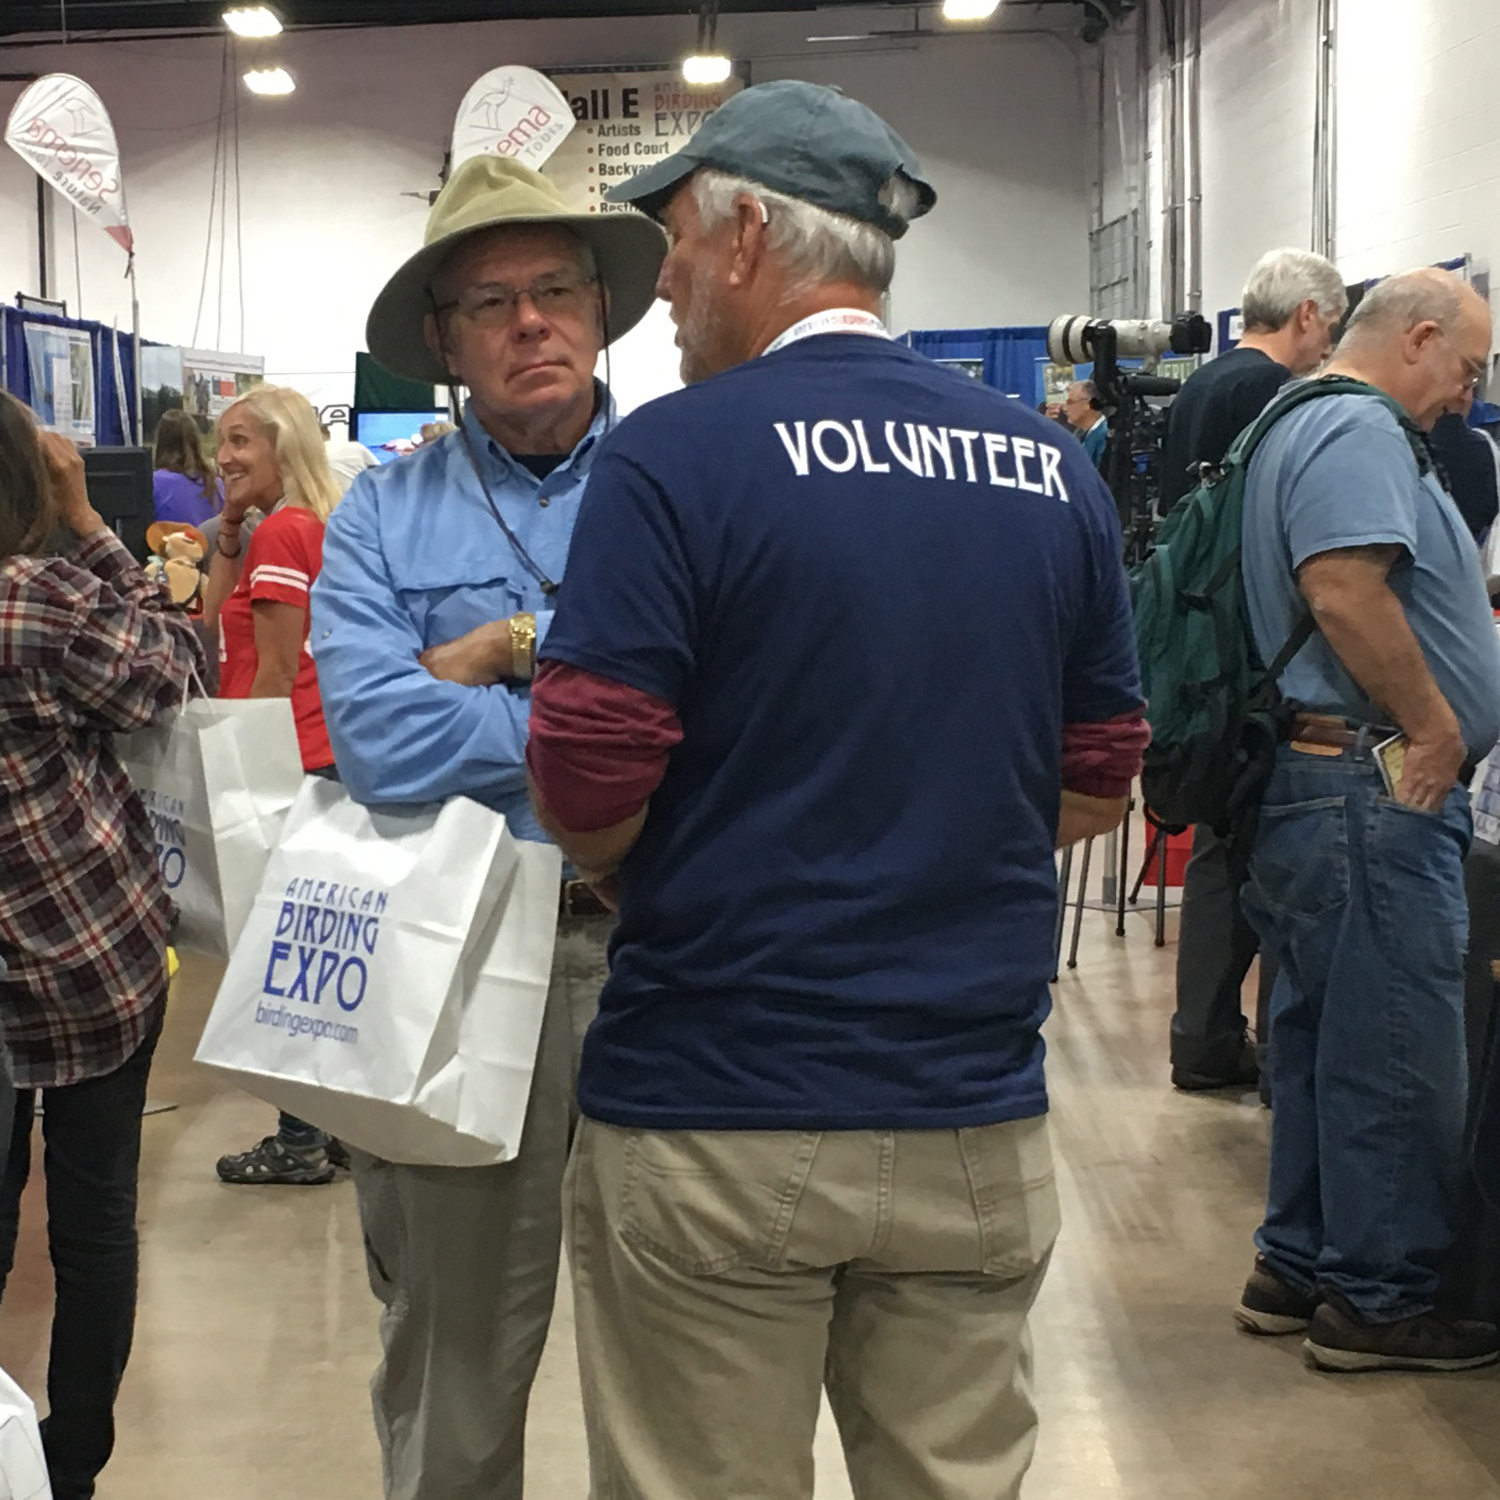 Hundreds of Volunteers Needed for American Birding Expo Coming to the Area